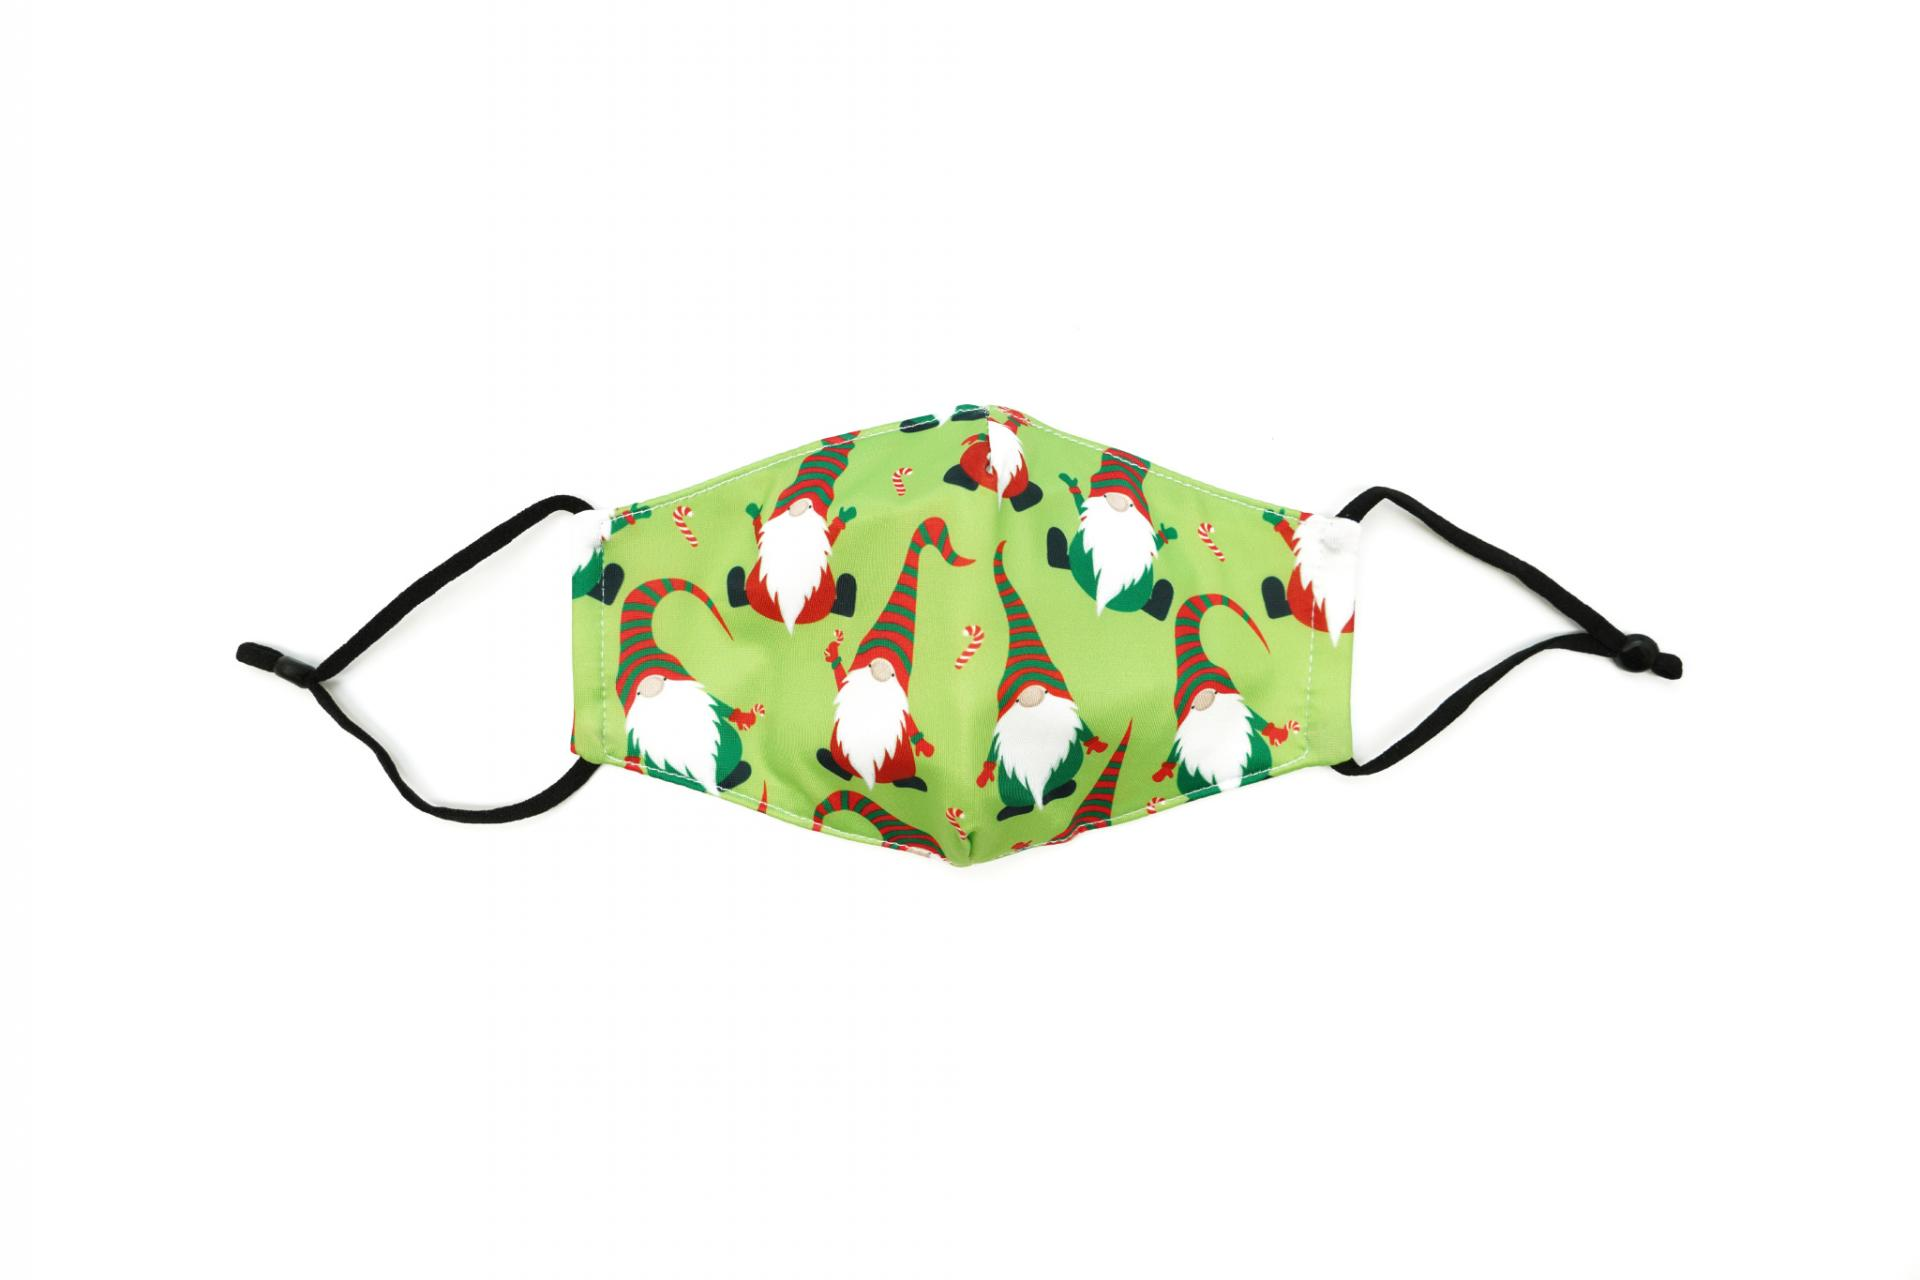 Care Cover Protective Mask Kids Festive Gnomes. Kids protective mask with a festive gnomes print.